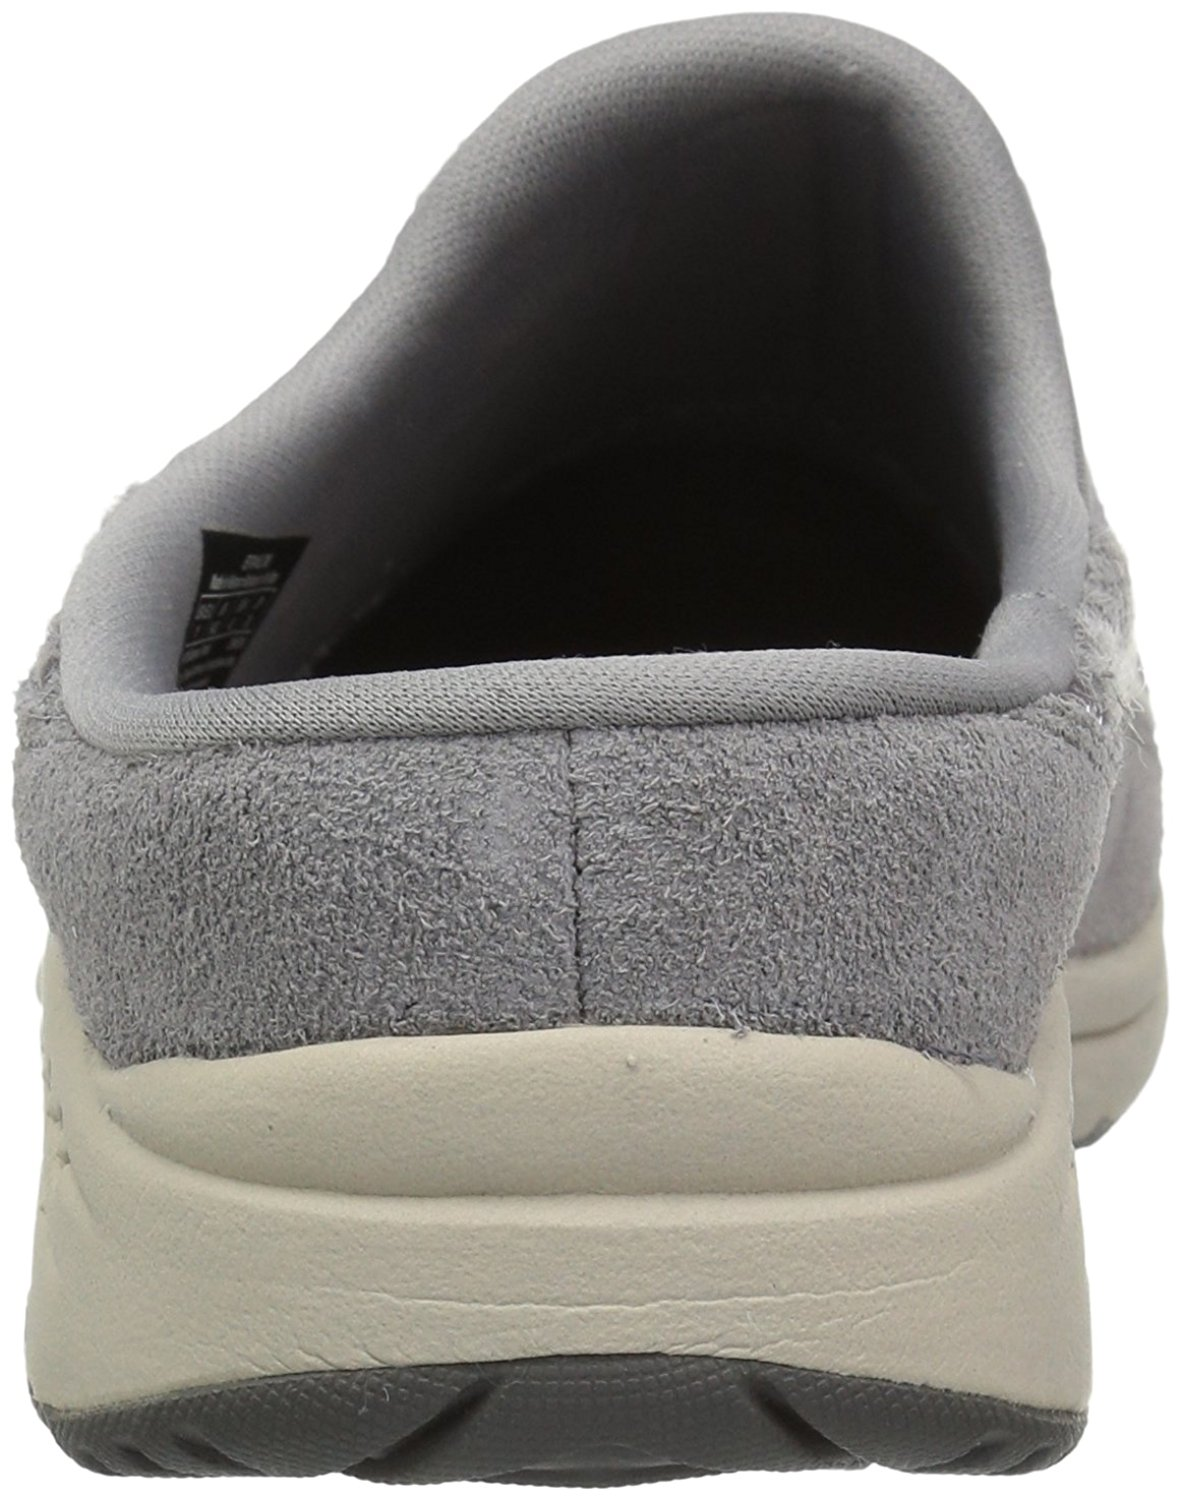 dcf87fcd60e31 Details about Easy Spirit Womens TRAVELTIME Low Top Slip On Walking Shoes,  Grey, Size 6.0